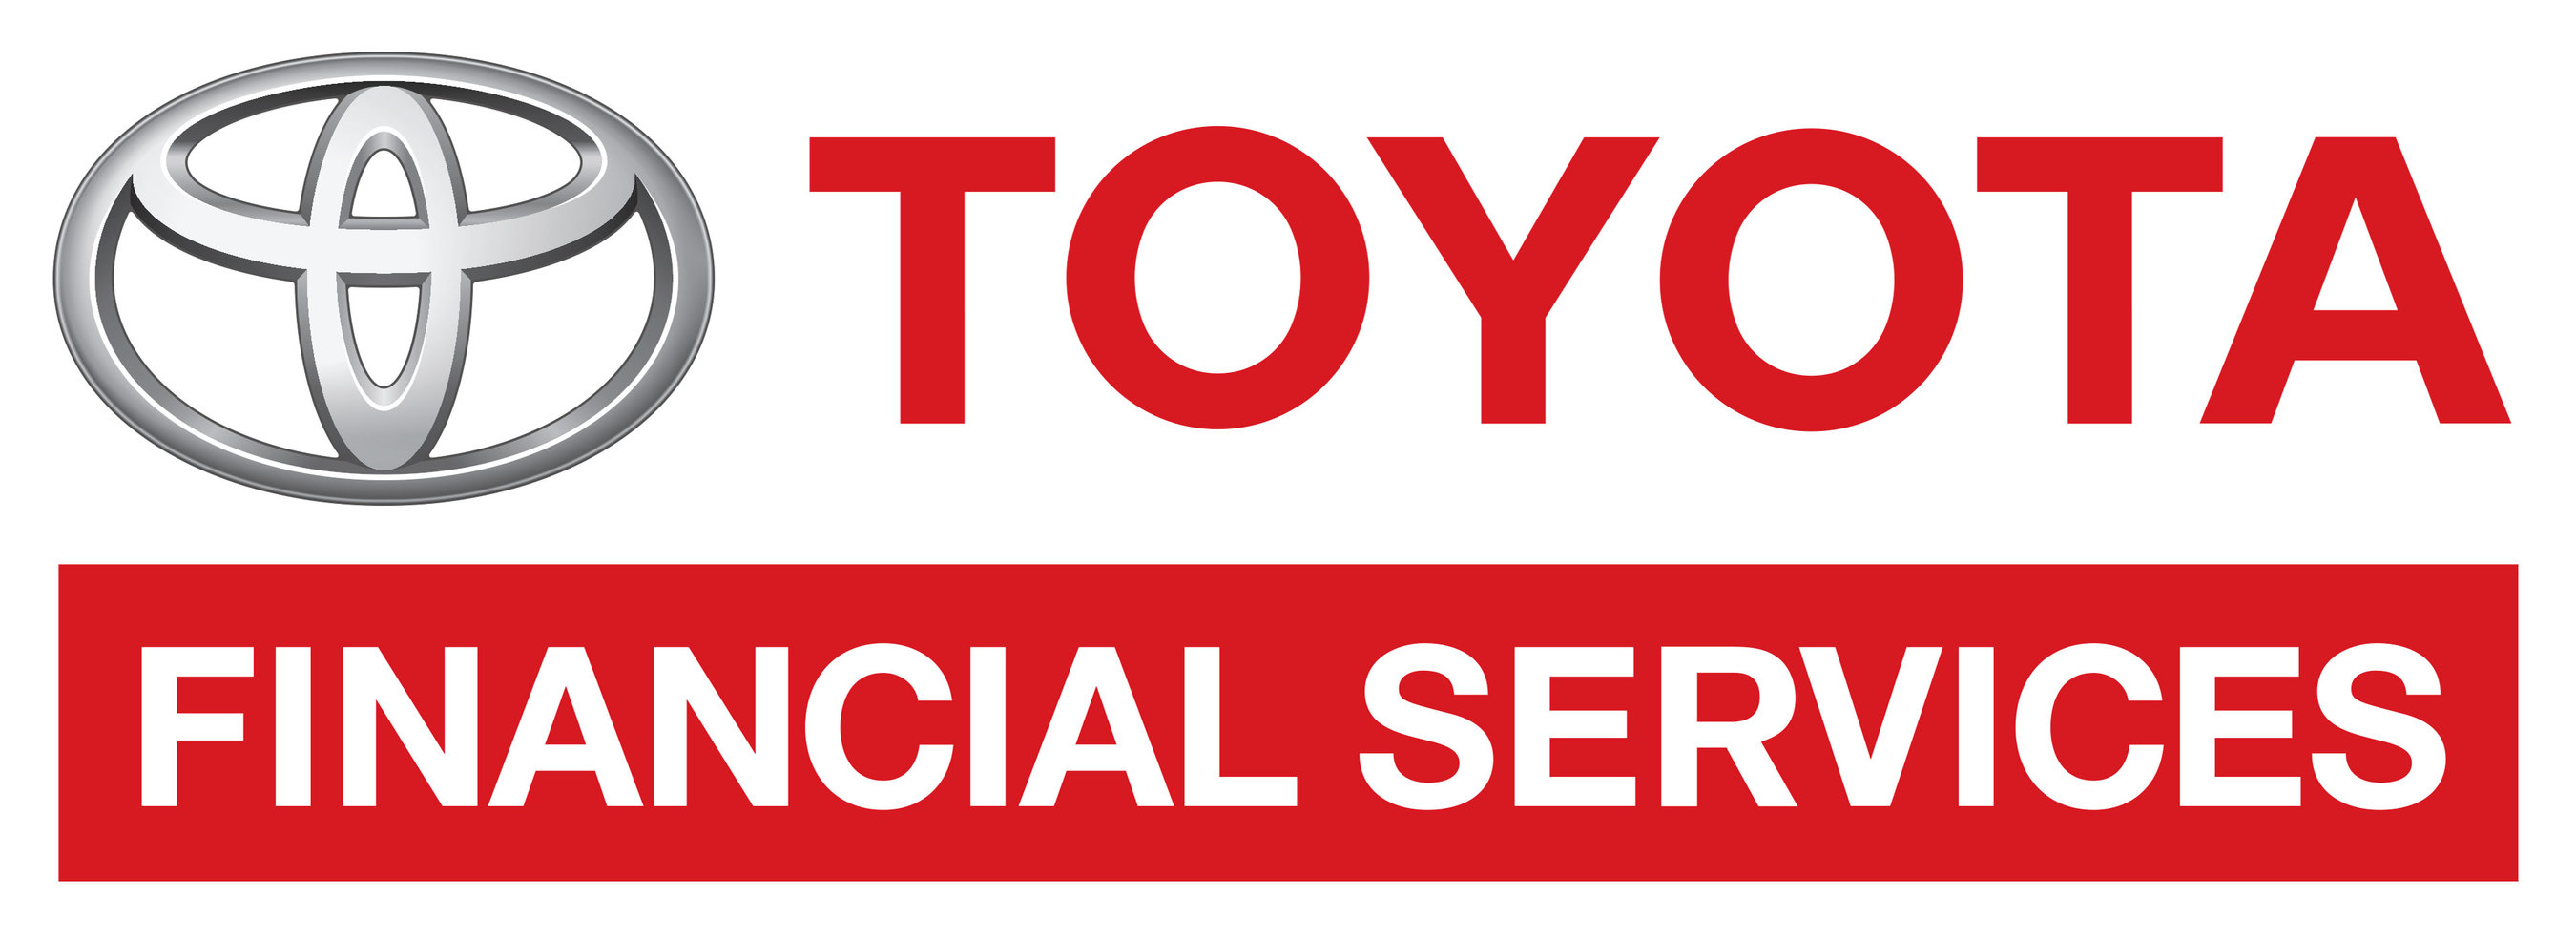 Toyota Financial Payment >> Toyota Financial Services Offers Payment Relief to ...